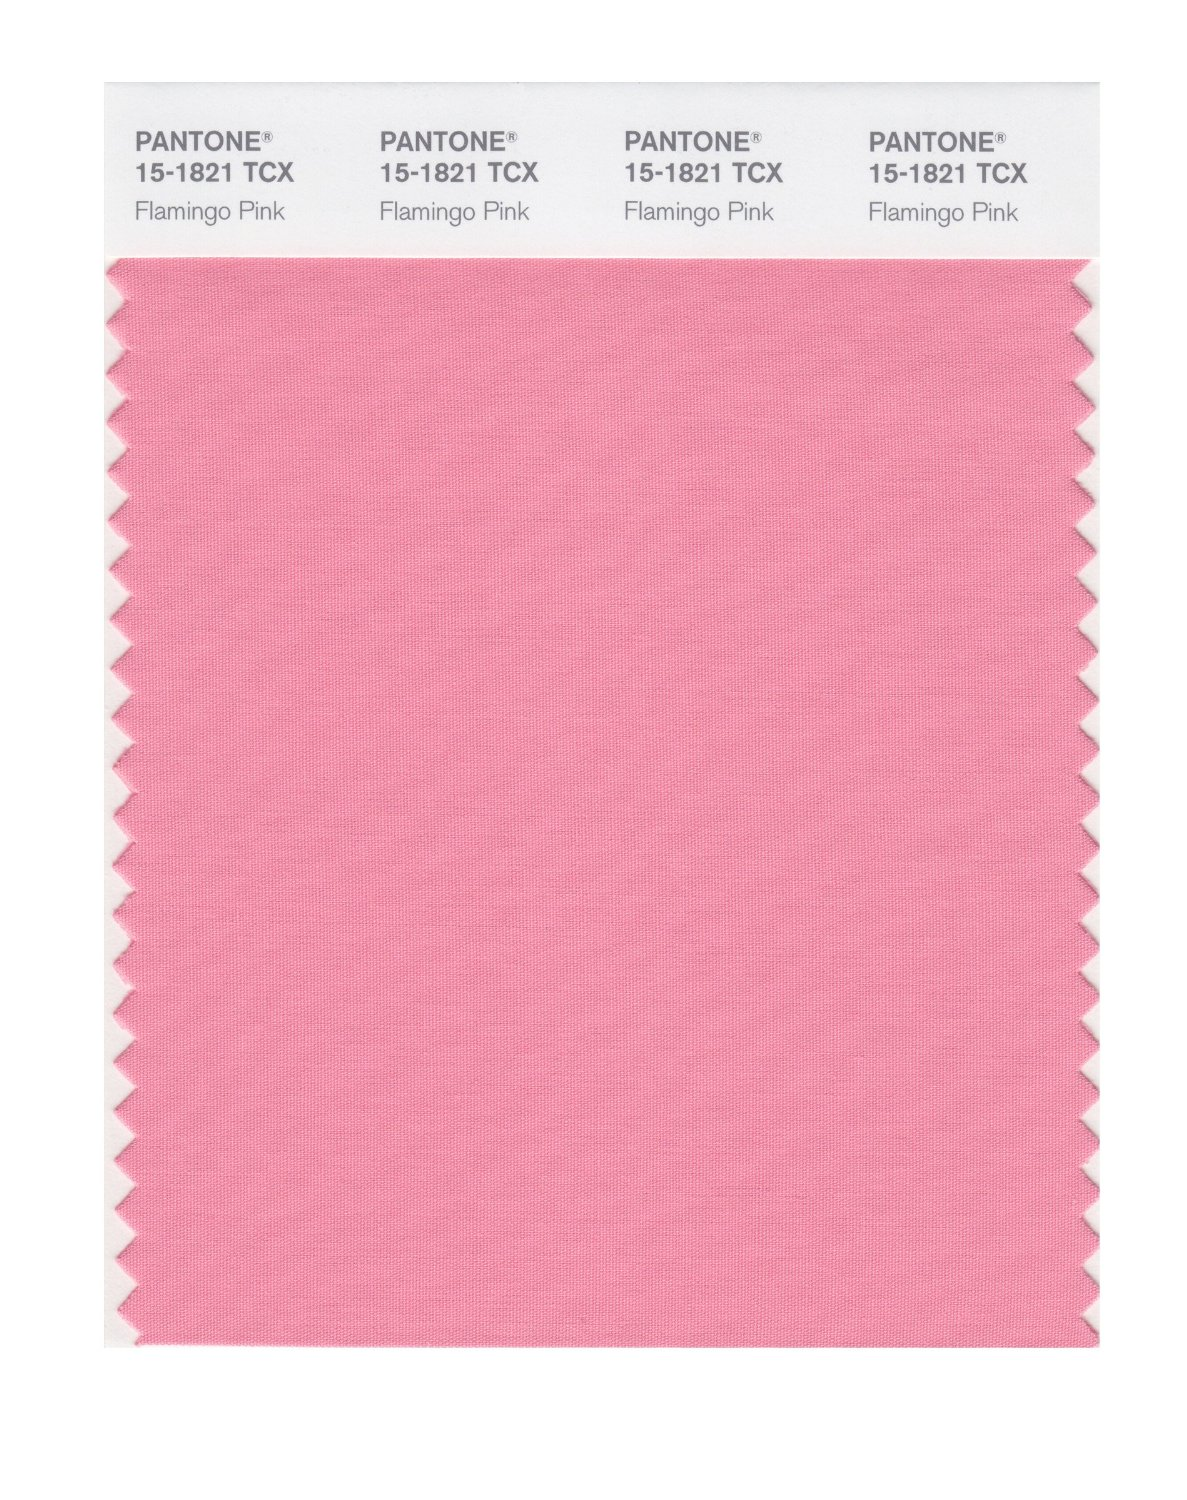 Pantone Smart Swatch 15-1821 Flamingo Pink